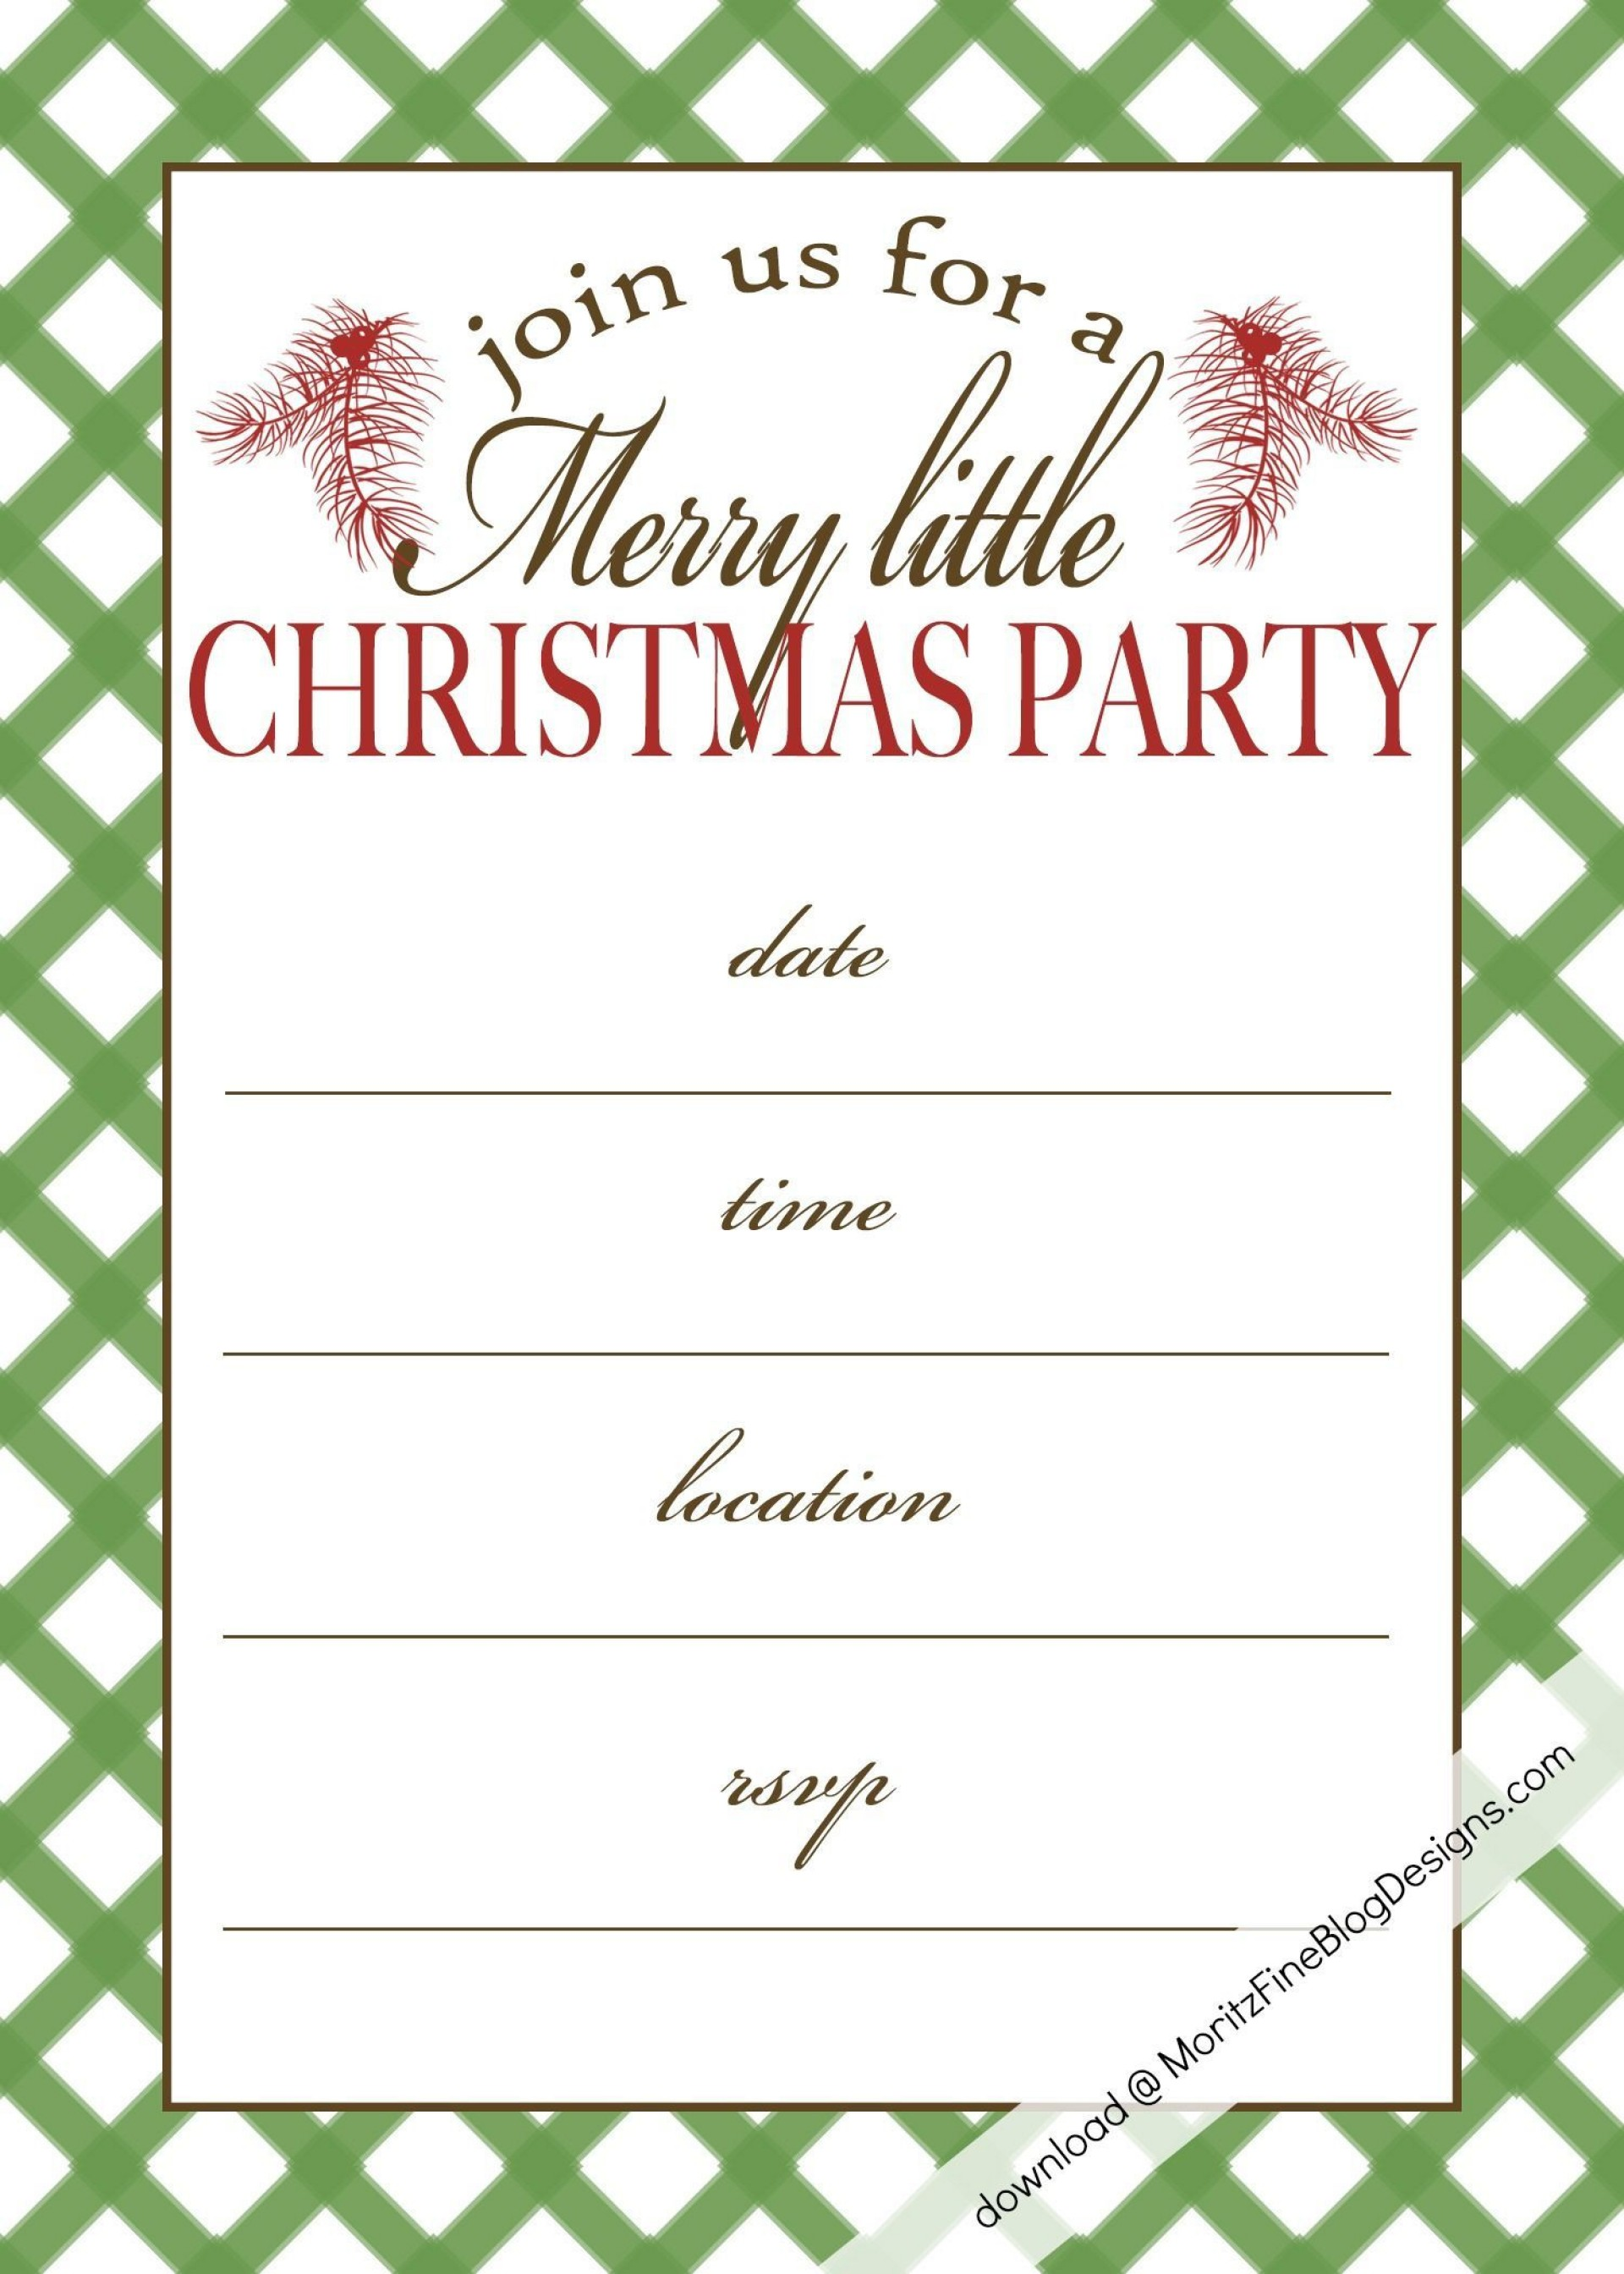 002 Imposing Christma Party Invite Template Free Download High Def  Funny Invitation Holiday1920